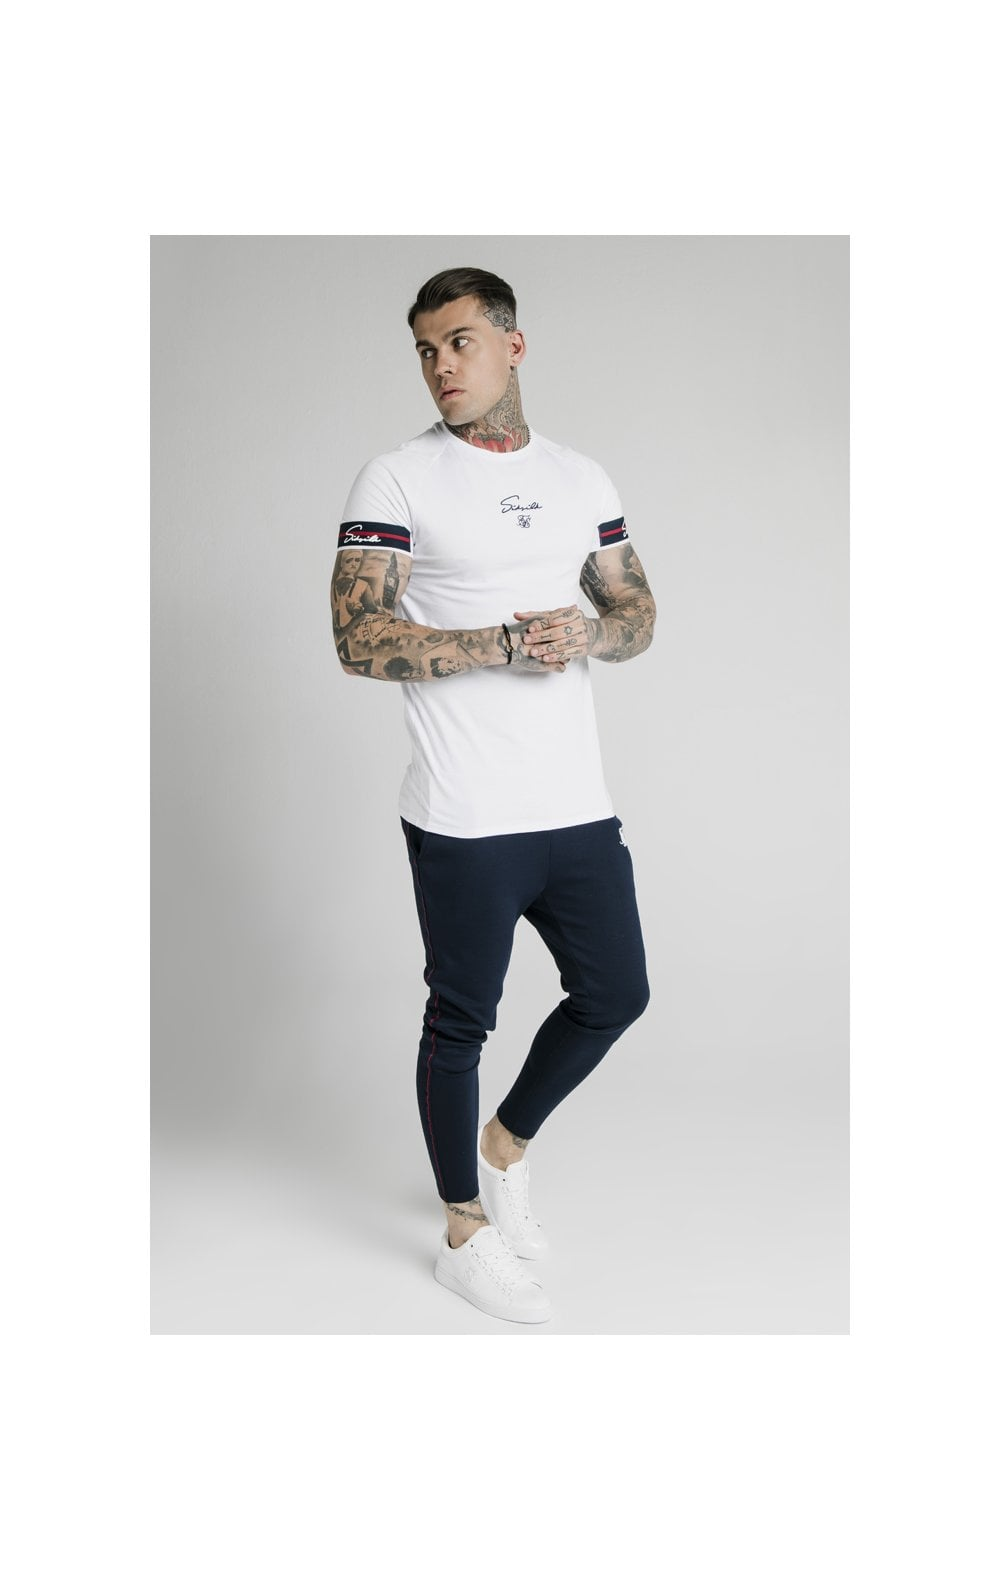 Load image into Gallery viewer, SikSilk Raglan Tech Tee Exposed Tape - White (5)